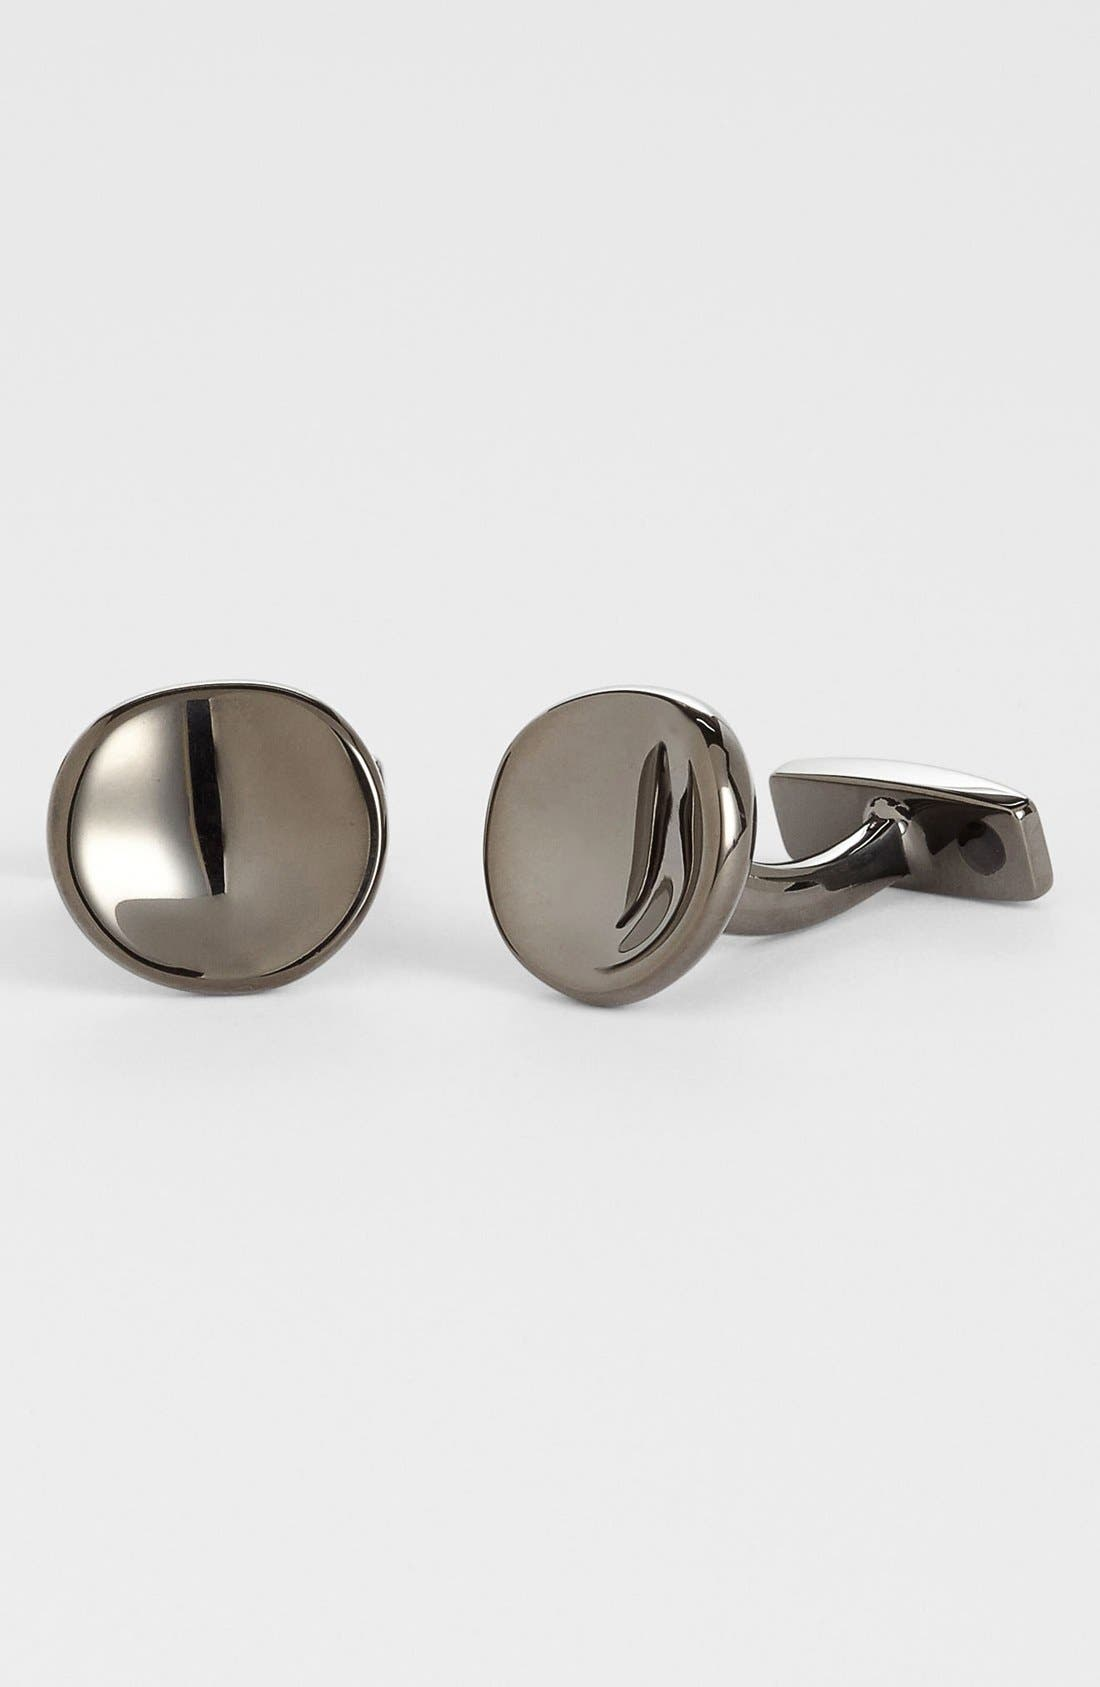 Alternate Image 1 Selected - BOSS HUGO BOSS 'Mio' Cuff Links